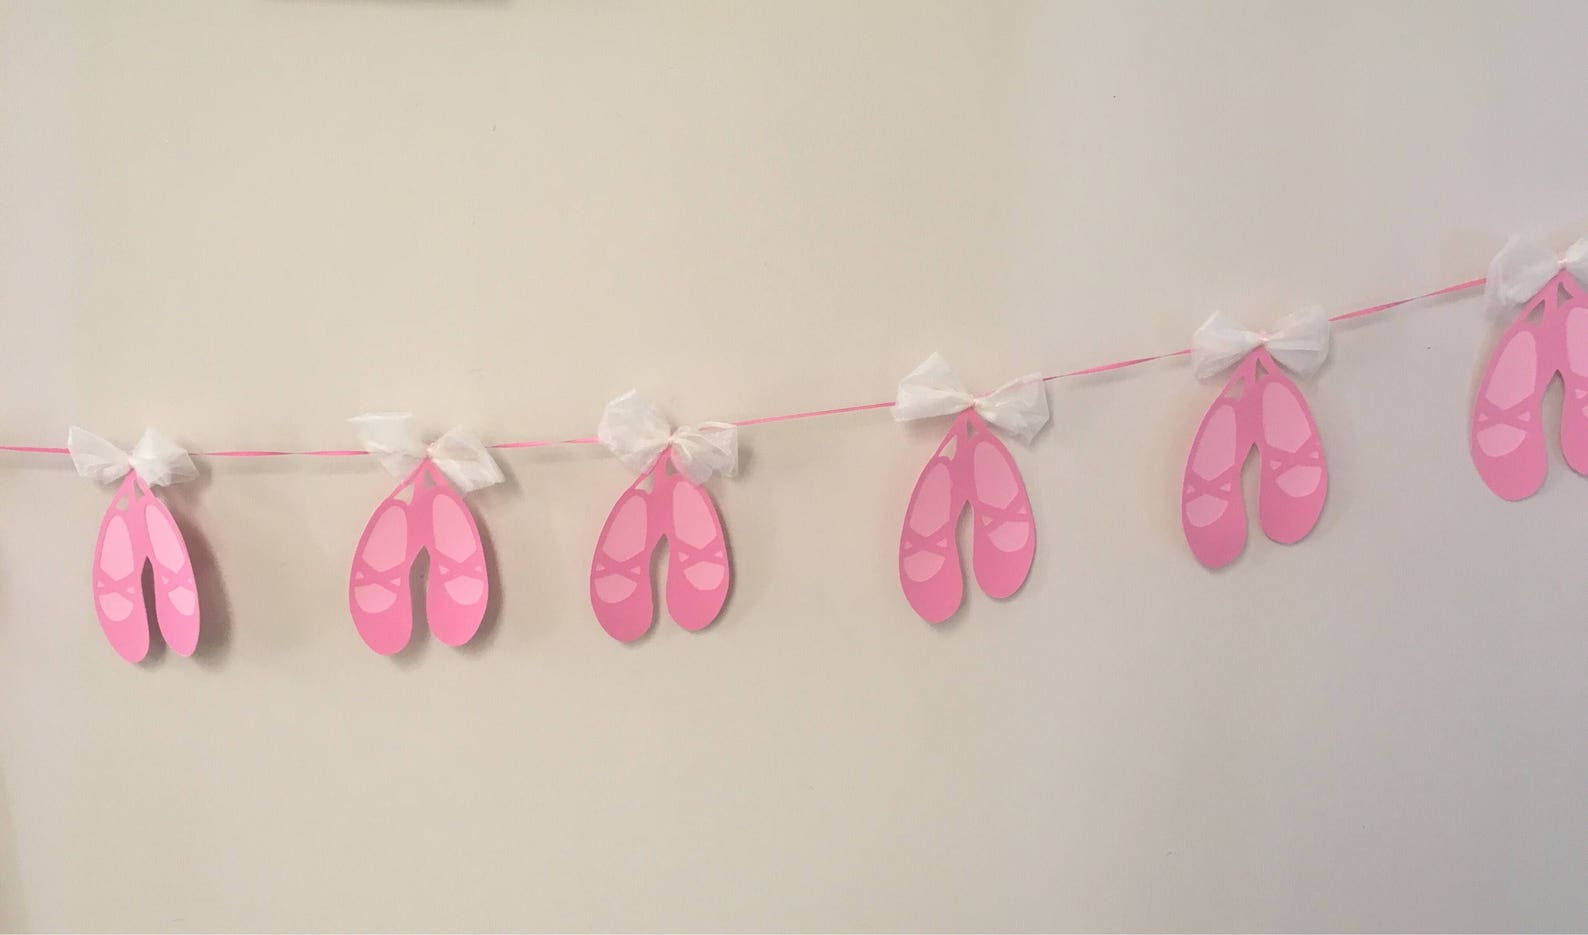 ballerina slipper banner ballet dancer shoes birthday party photo cake smash photography sign dancer tutu bow dancing dainty mus